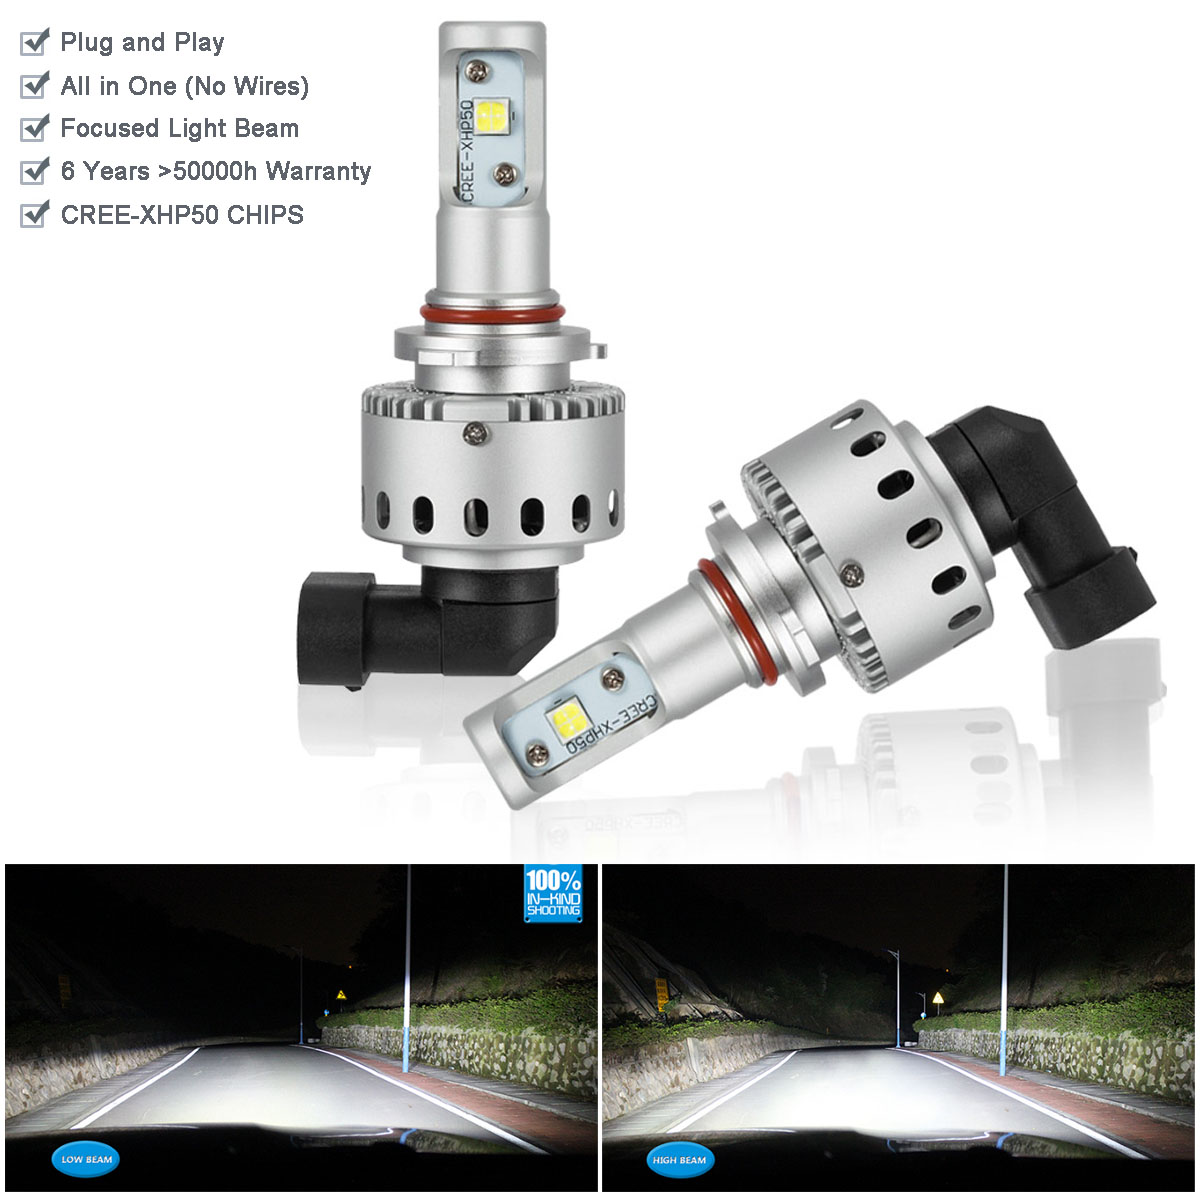 Led Headlight Kit Hid Xenon White 9005 Hb3 Bulb 6000k For Subaru Ebay Plug And Play Quick Fit To High Beam Wiring Harness